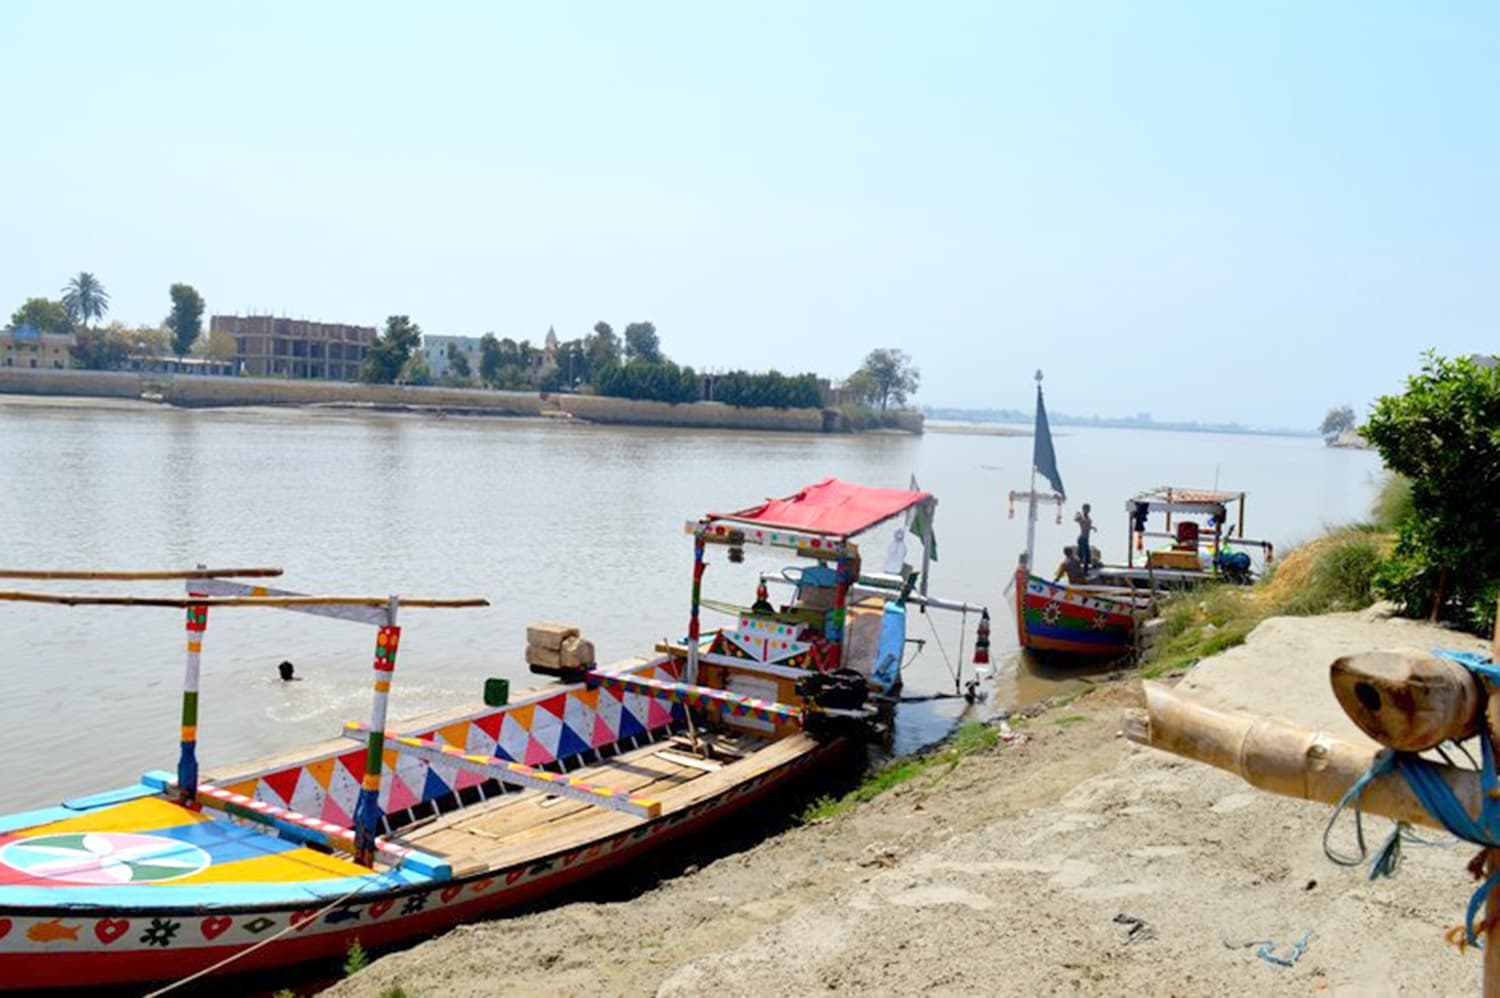 A painted boat on the shore of River Indus.